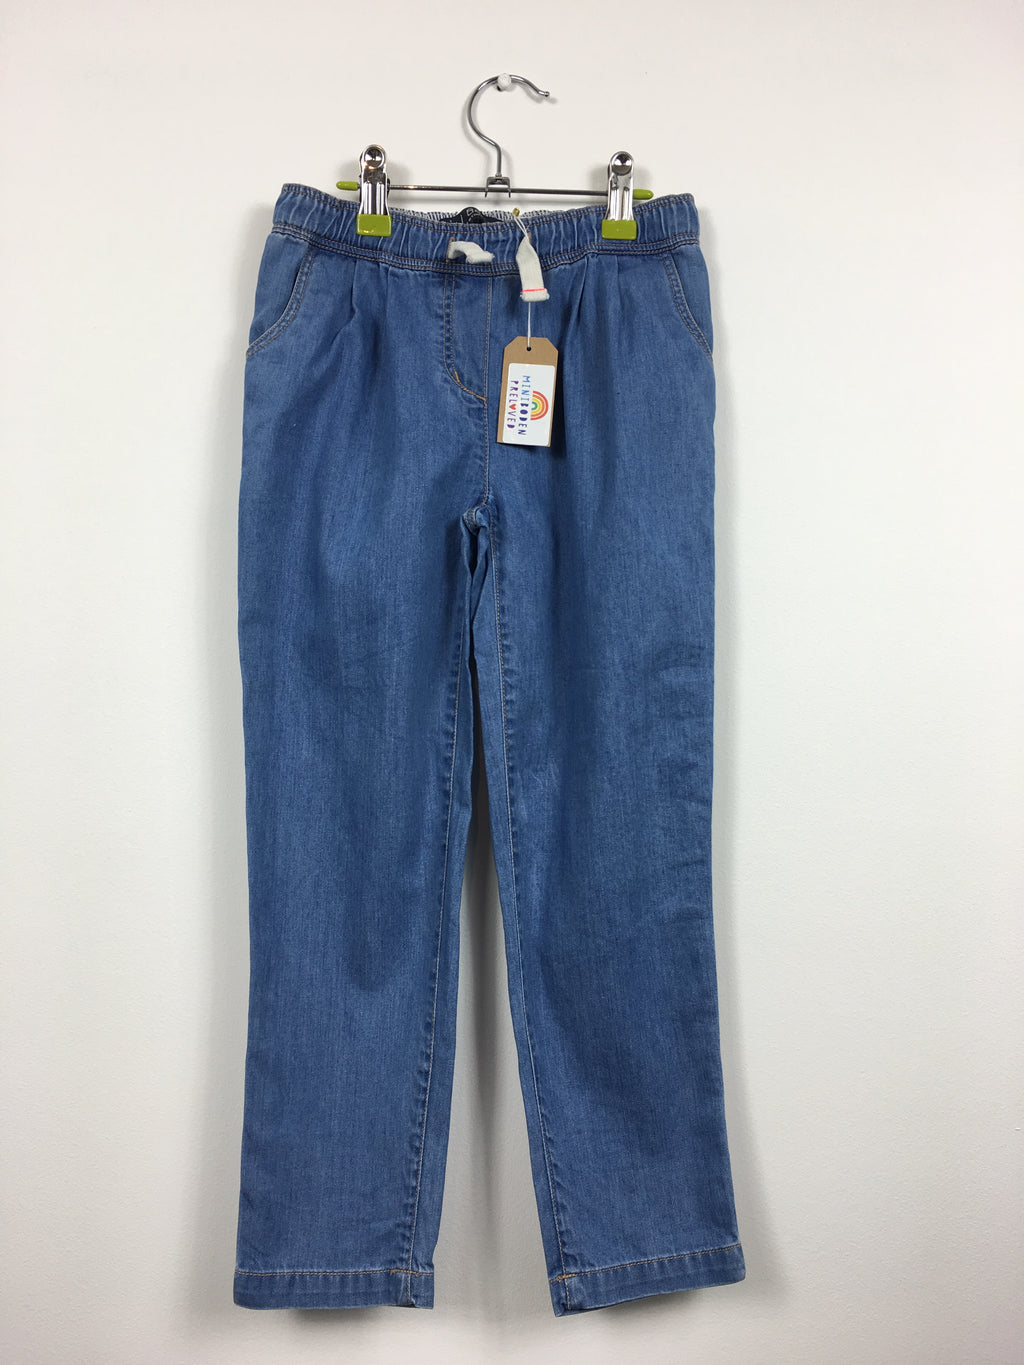 Blue Every Day Comfy Jeans ( 7 Years)